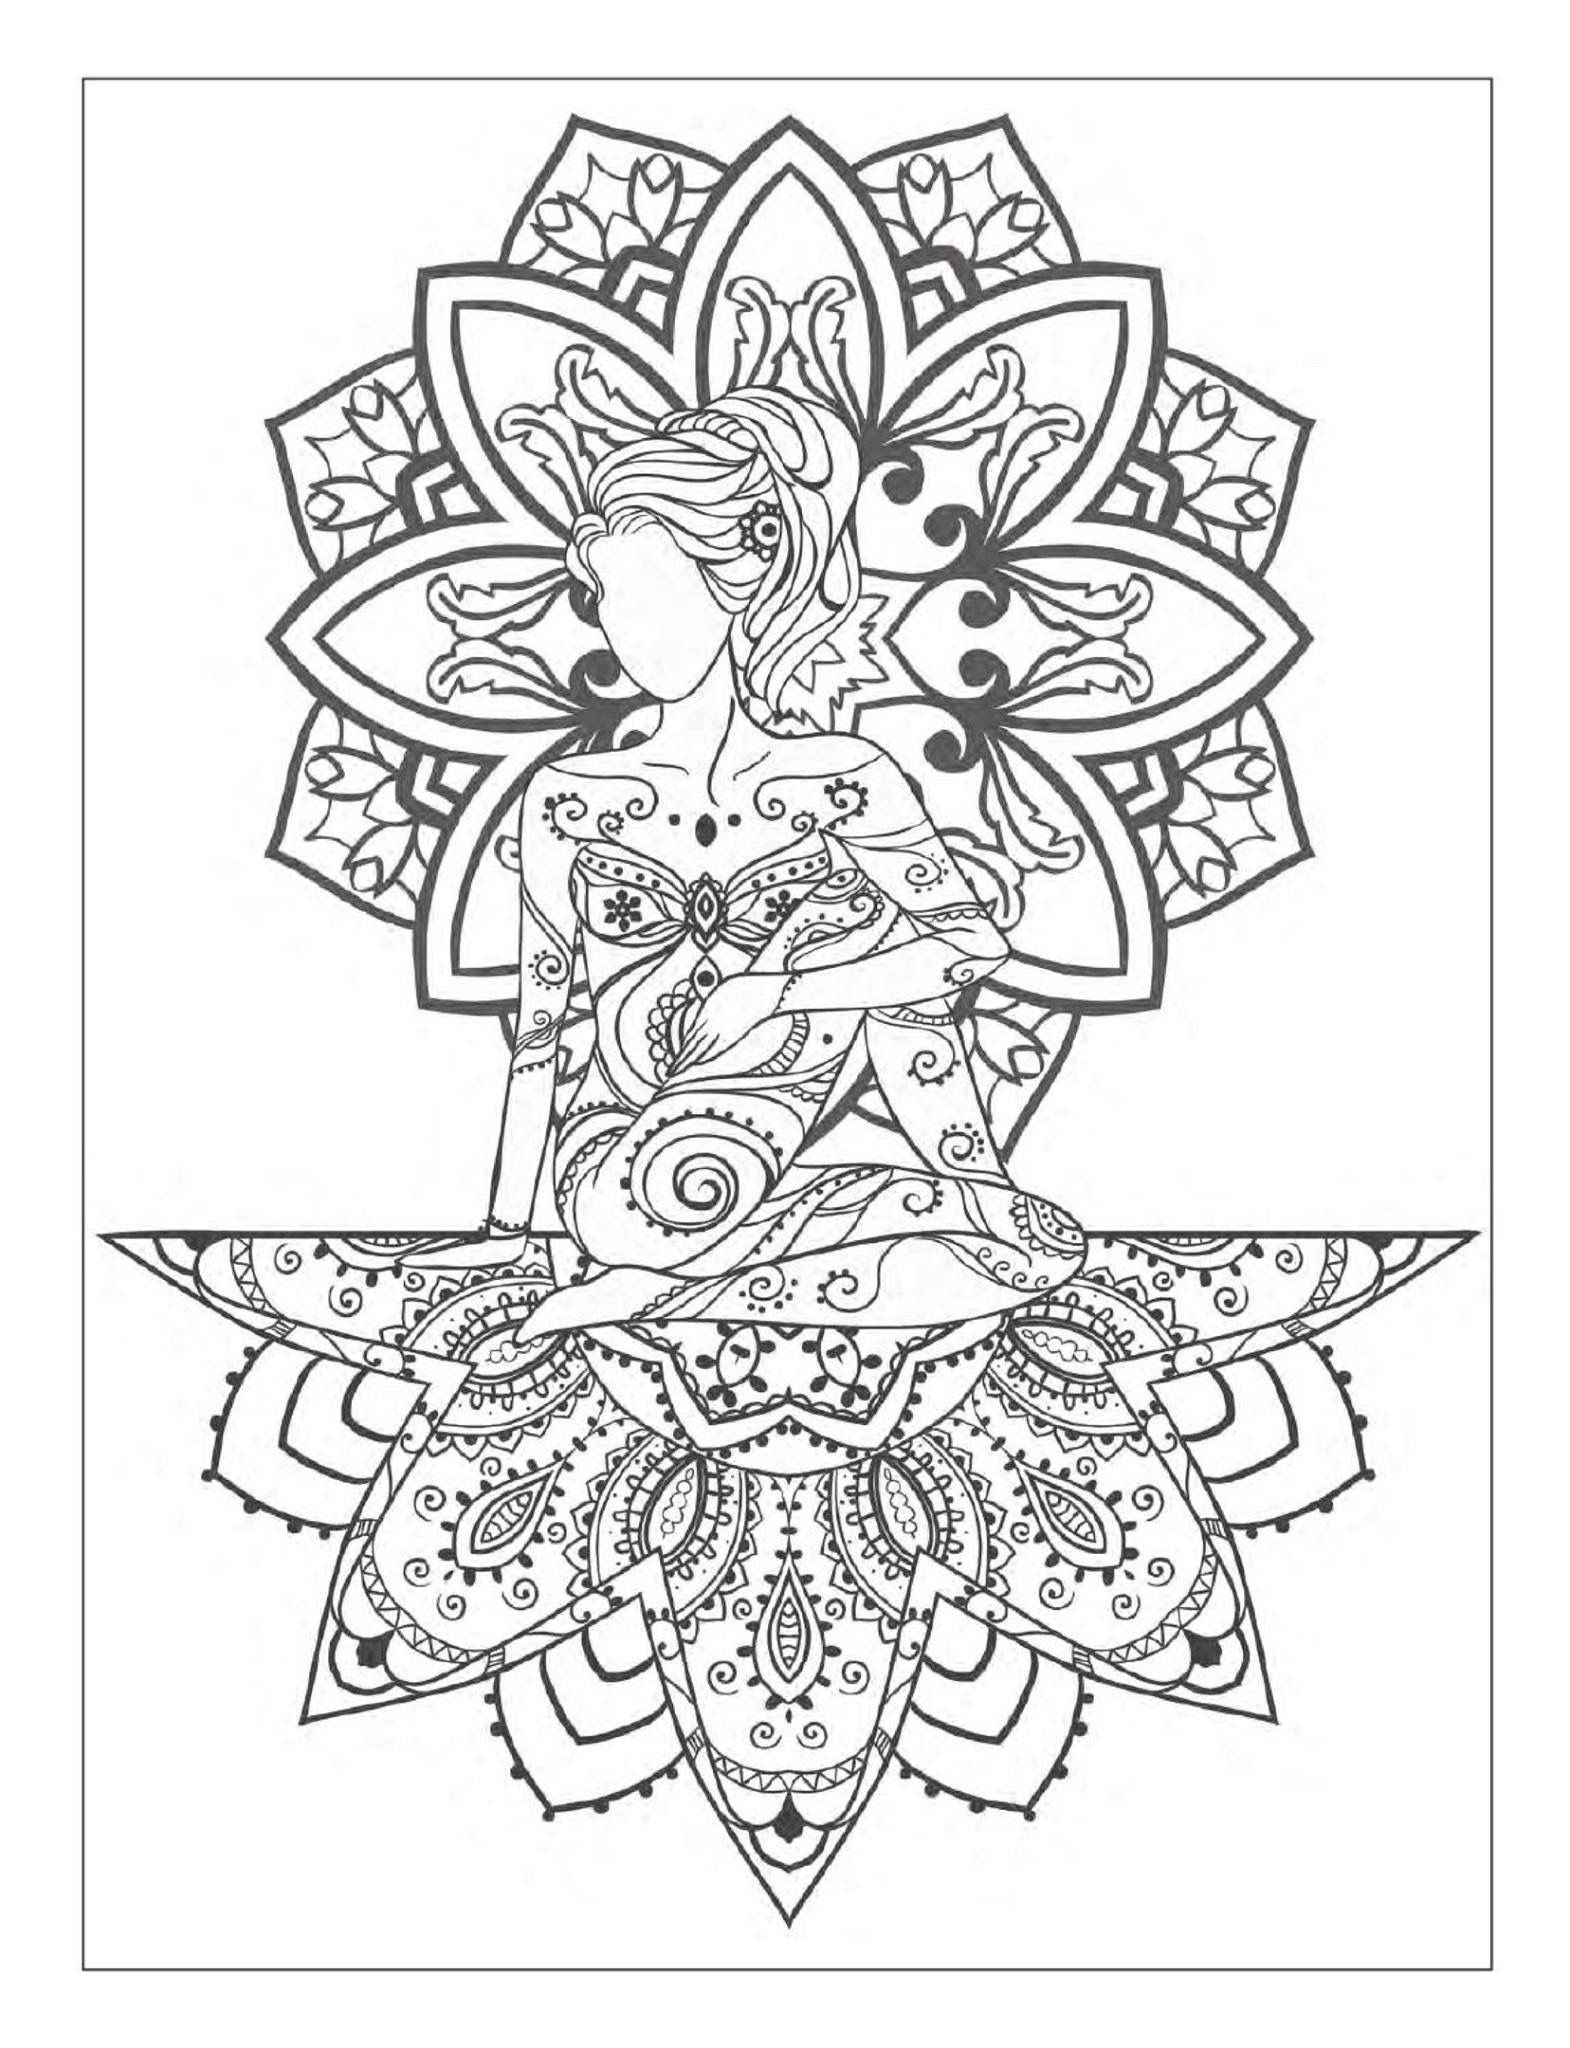 Pin By Nilam Shah On Yoga Coloring Books Mandala Coloring Pages Mandala Coloring Books